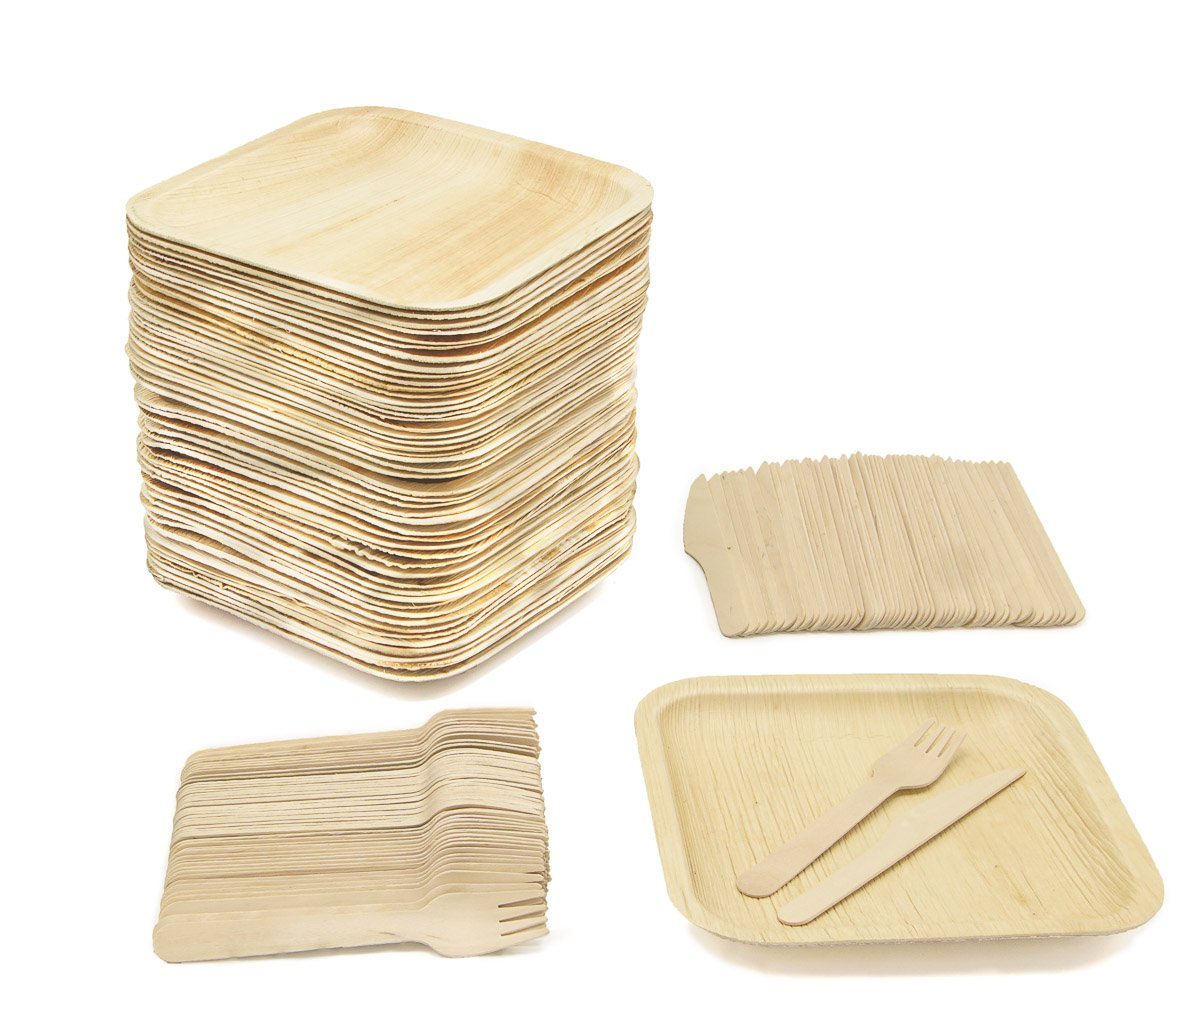 Party Pack of 150 Eco-Friendly Dinnerware - 50 Disposable 8'' Square Palm Leaf Plates, 50 Wood Forks, 50 Wood Knives